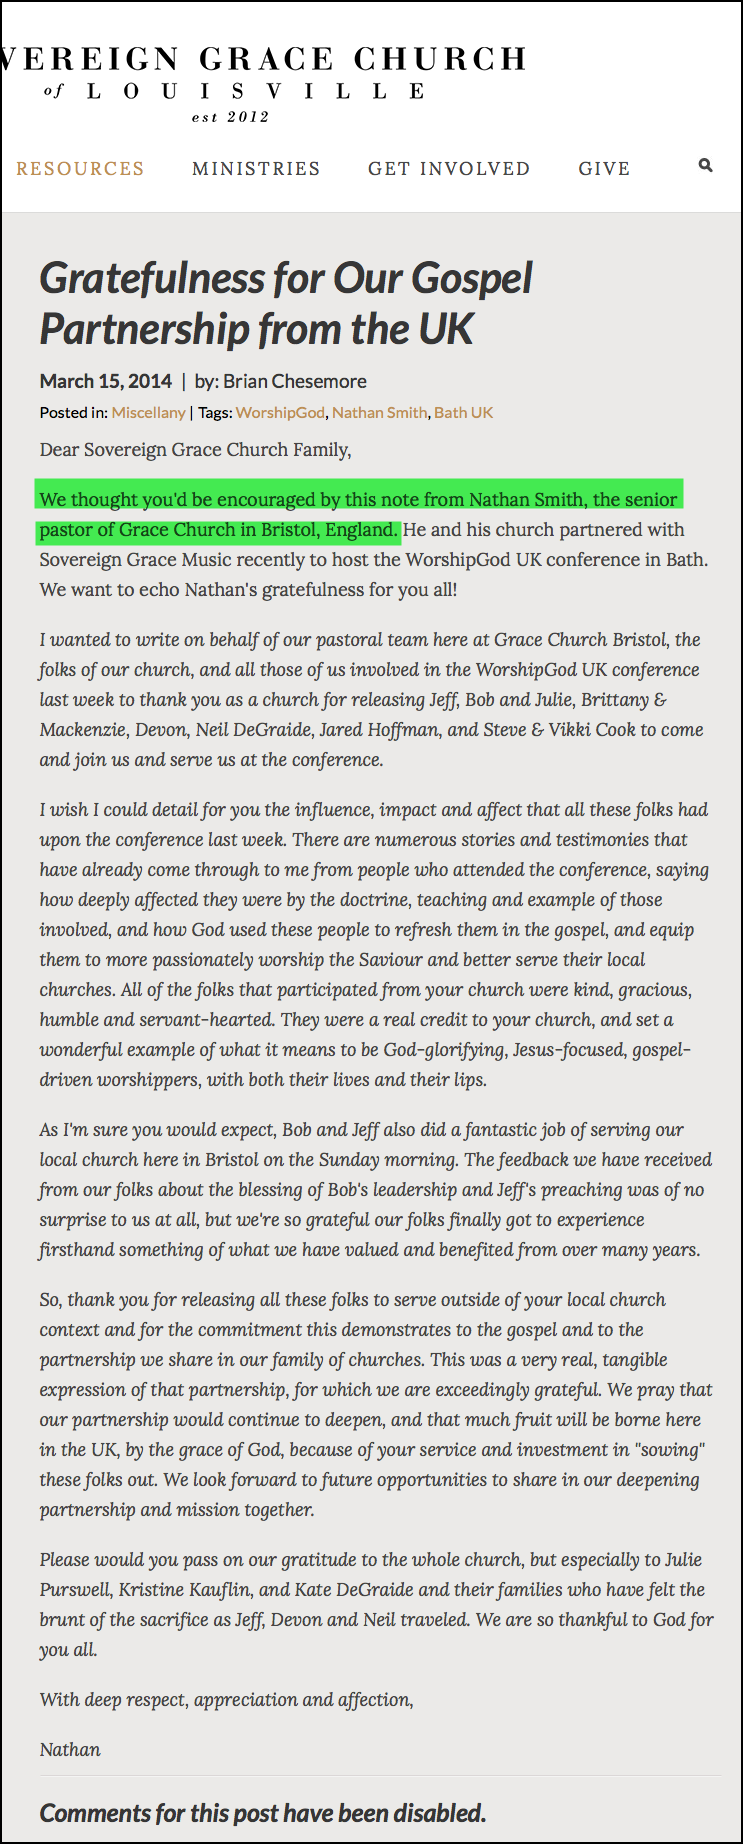 2016-09-27-nathan-smith-letter-to-sg-louisvile